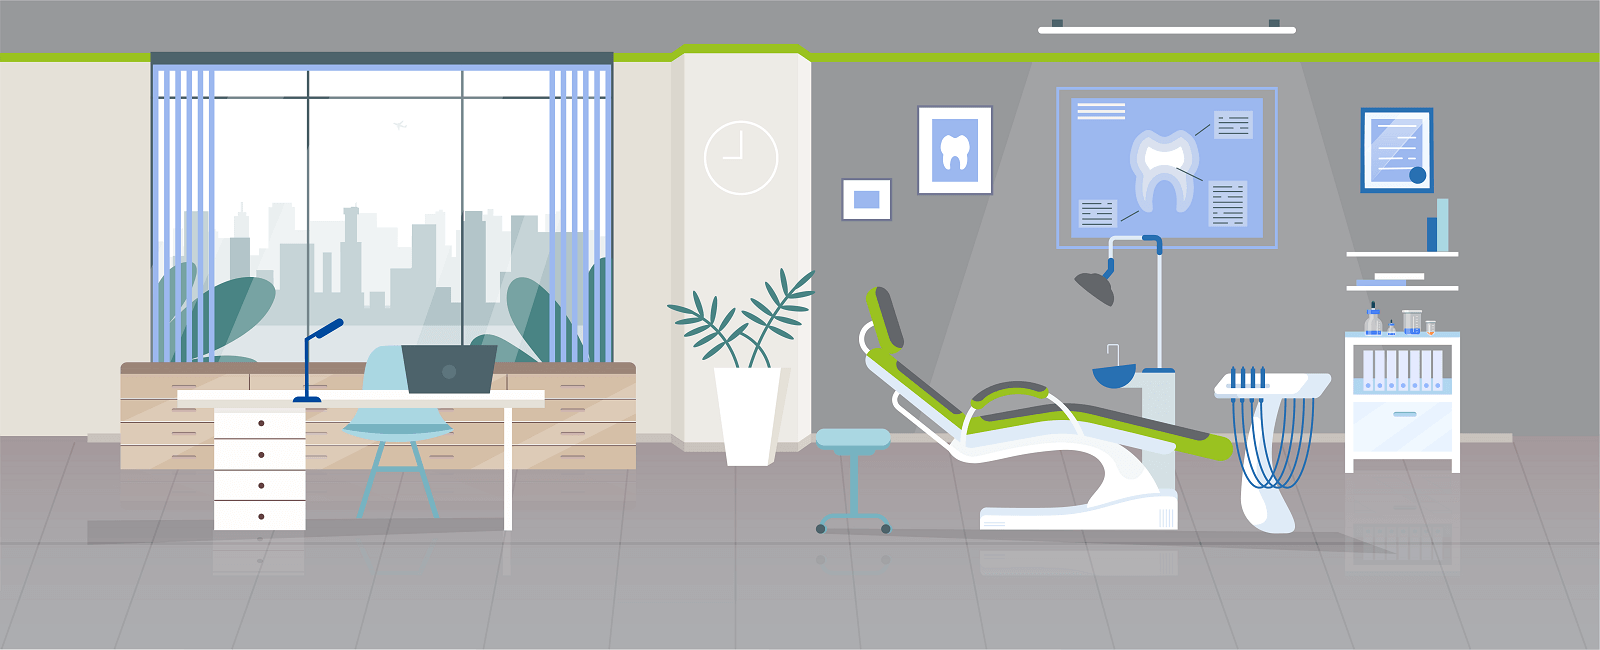 Dental-clinic-in-hrbr-layout